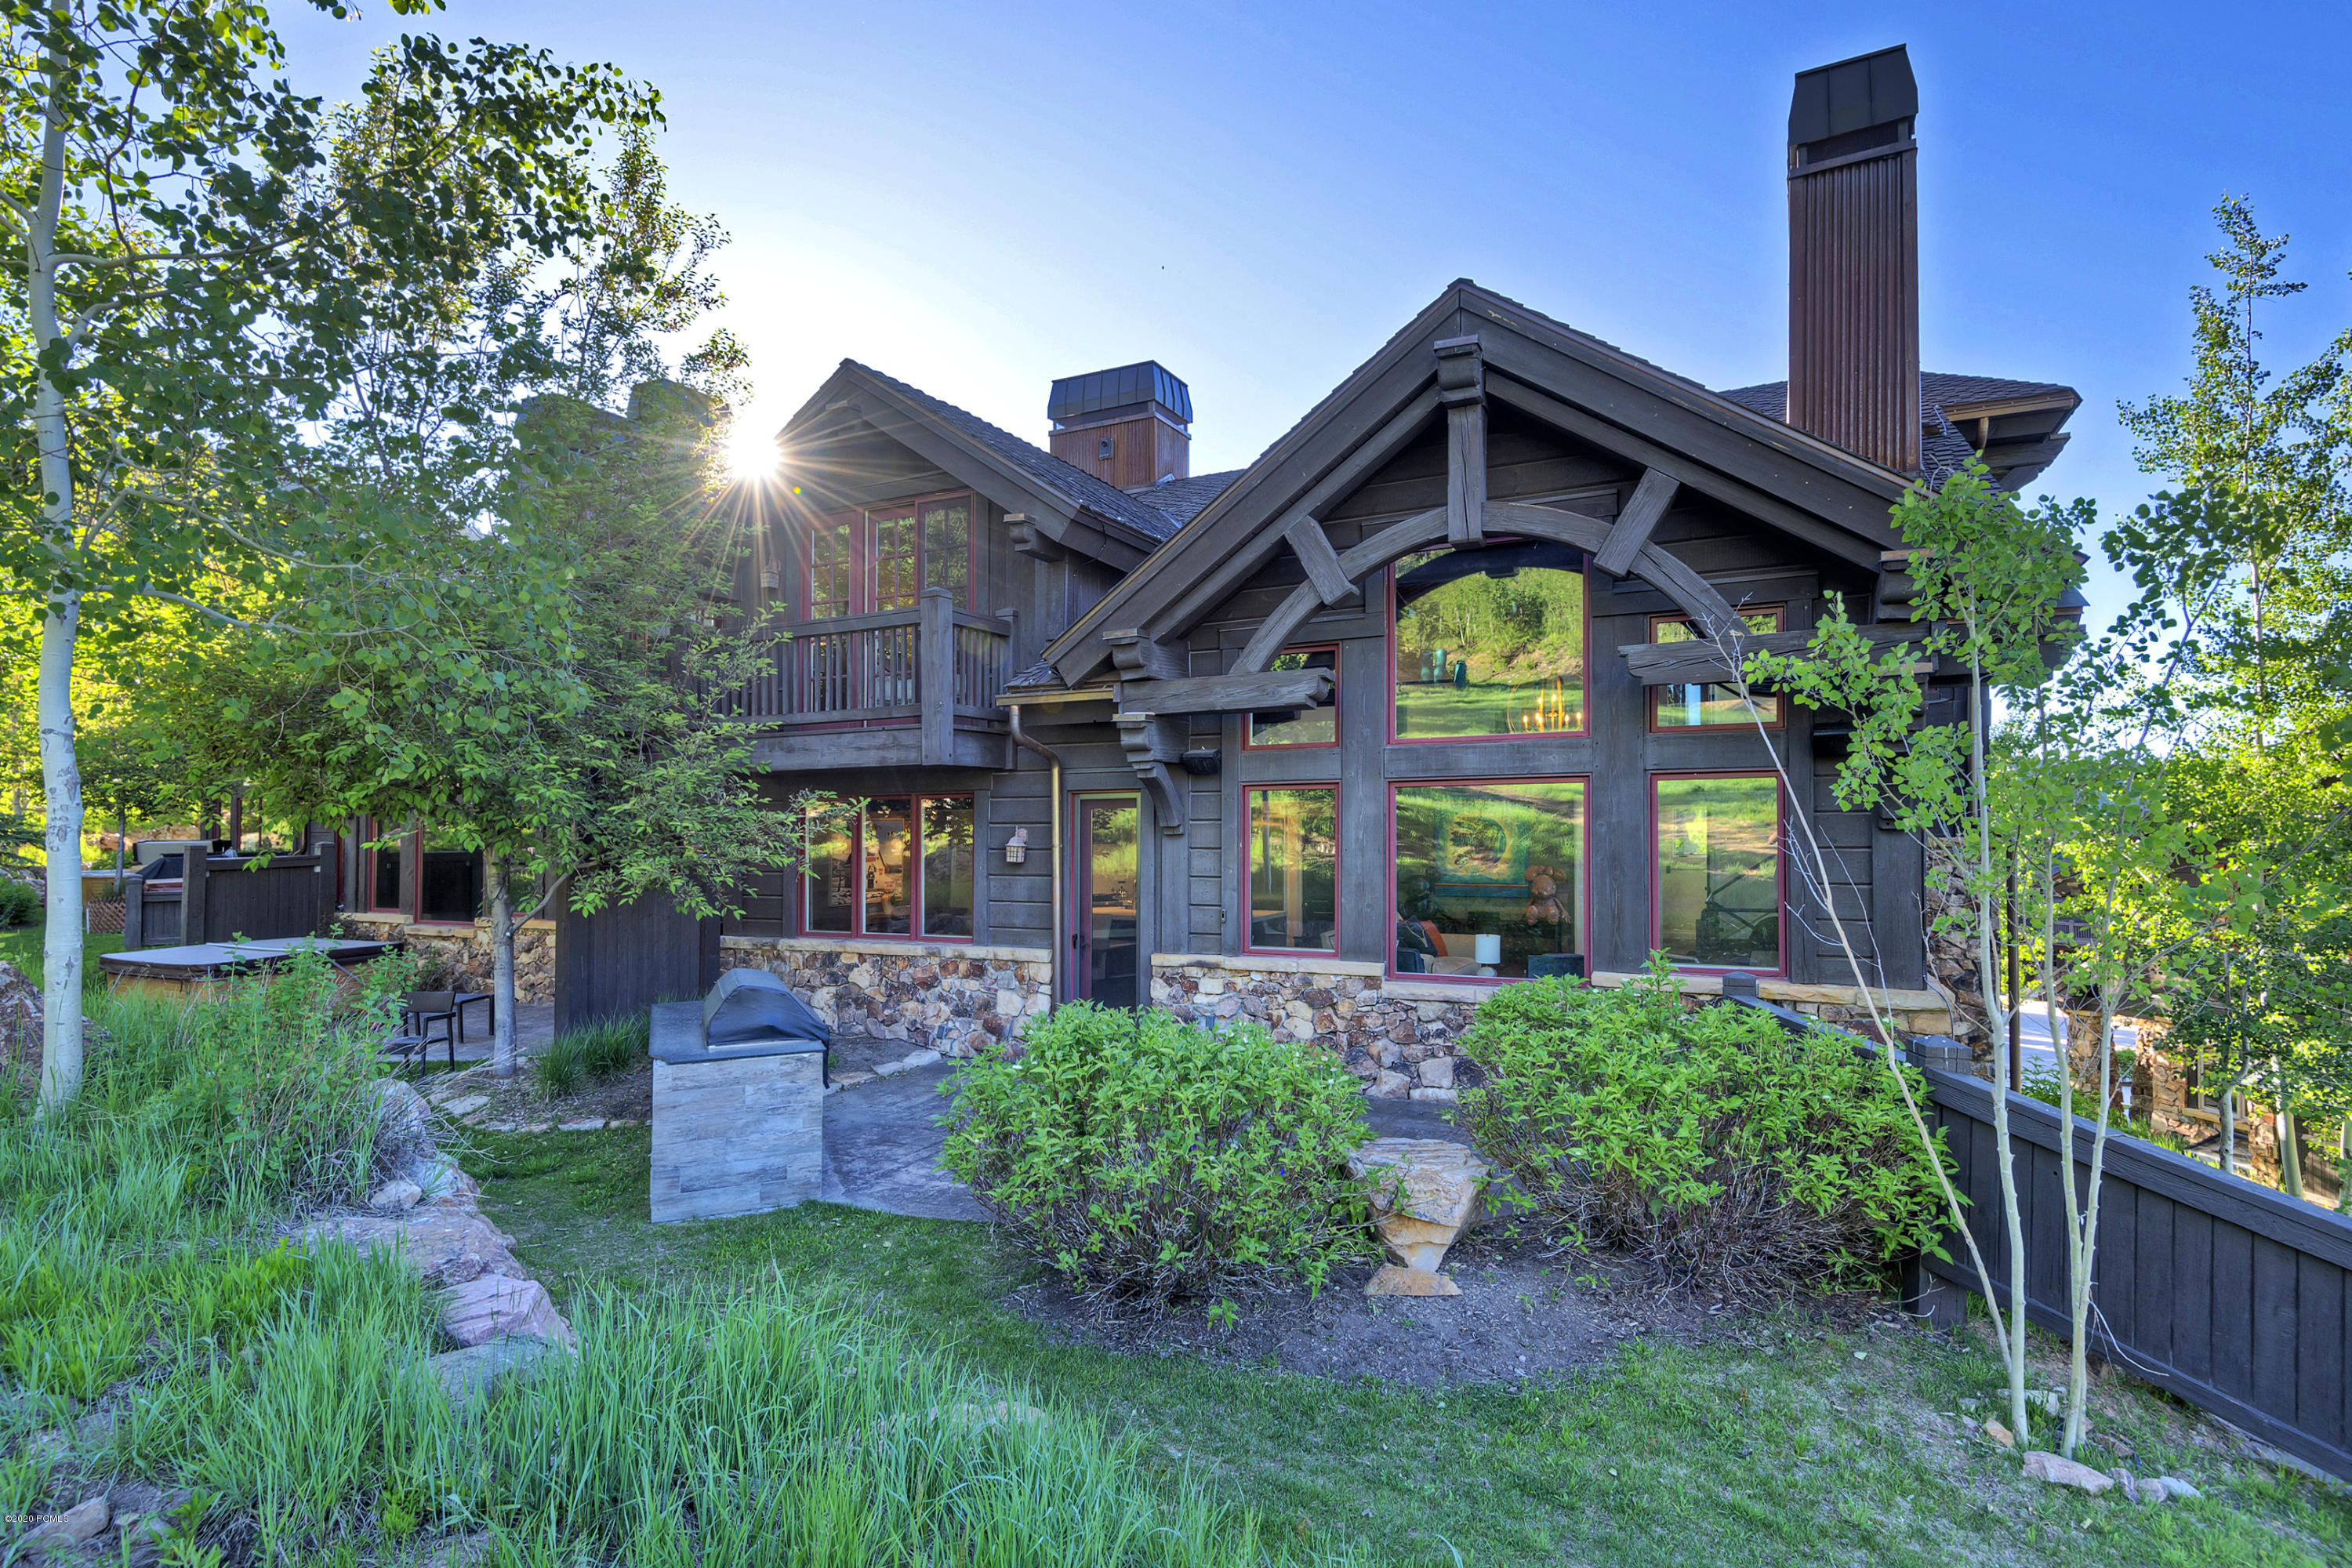 8789 Marsac Avenue, Park City, Utah 84060, 5 Bedrooms Bedrooms, ,7 BathroomsBathrooms,Condominium,For Sale,Marsac,20190109112430415765000000